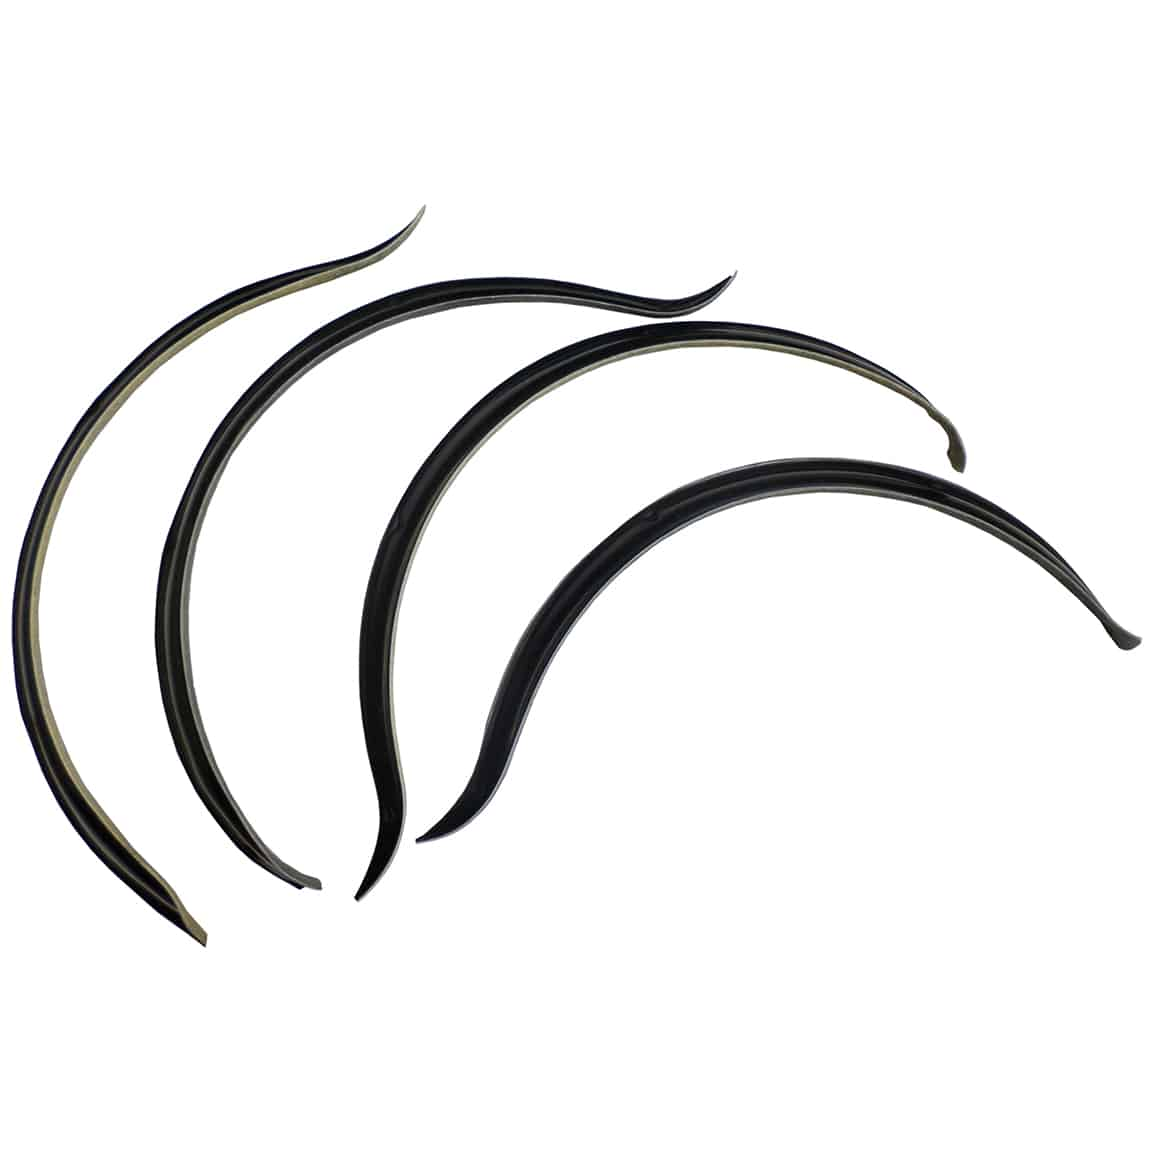 Fender Flare Set, Group 2 (SBO0001)